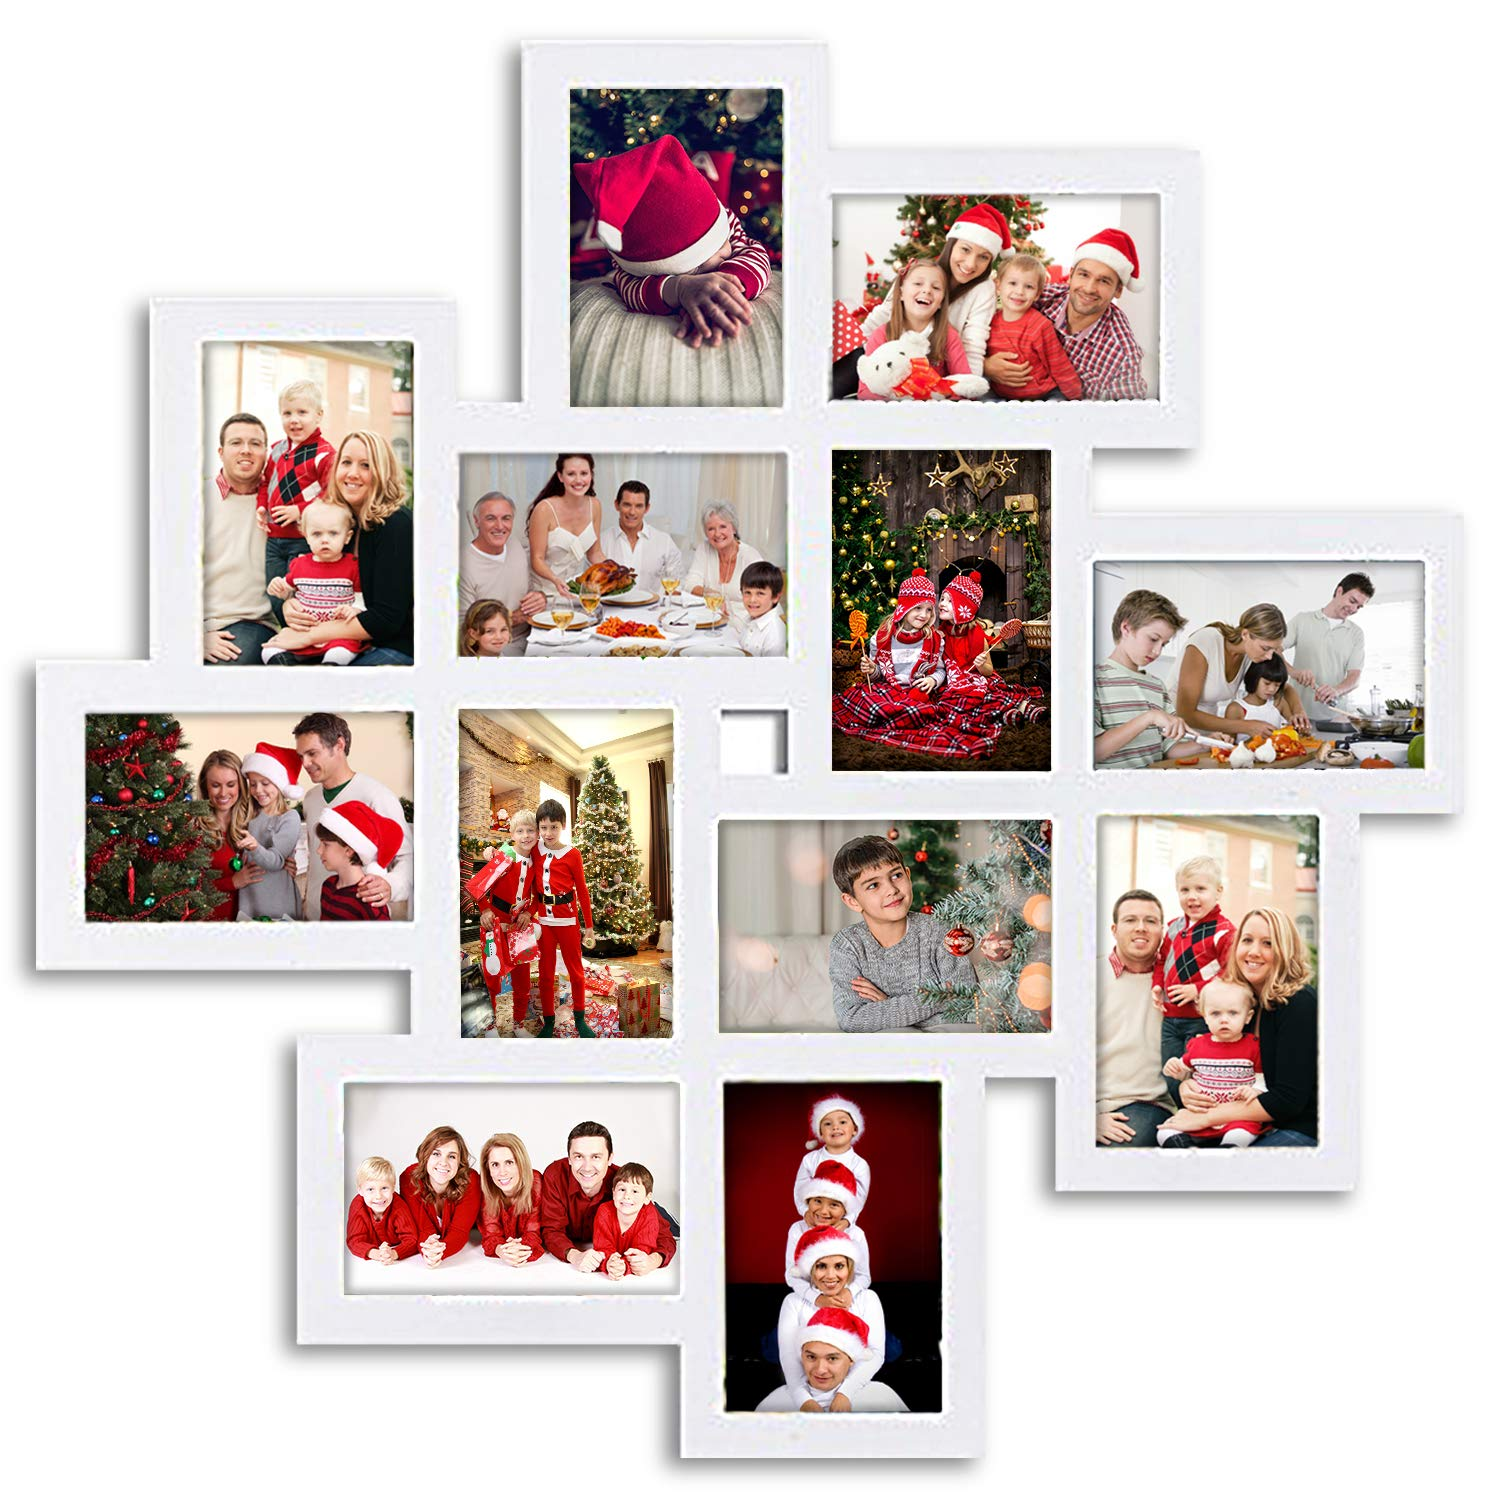 Jerry & Maggie - Photo Frame 24x24 Square Storm Eye White PVC Picture Frame Selfie Gallery Collage Wall Hanging for 6x4 Photo - 12 Photo Sockets - Wall Mounting Design by Jerry & Maggie